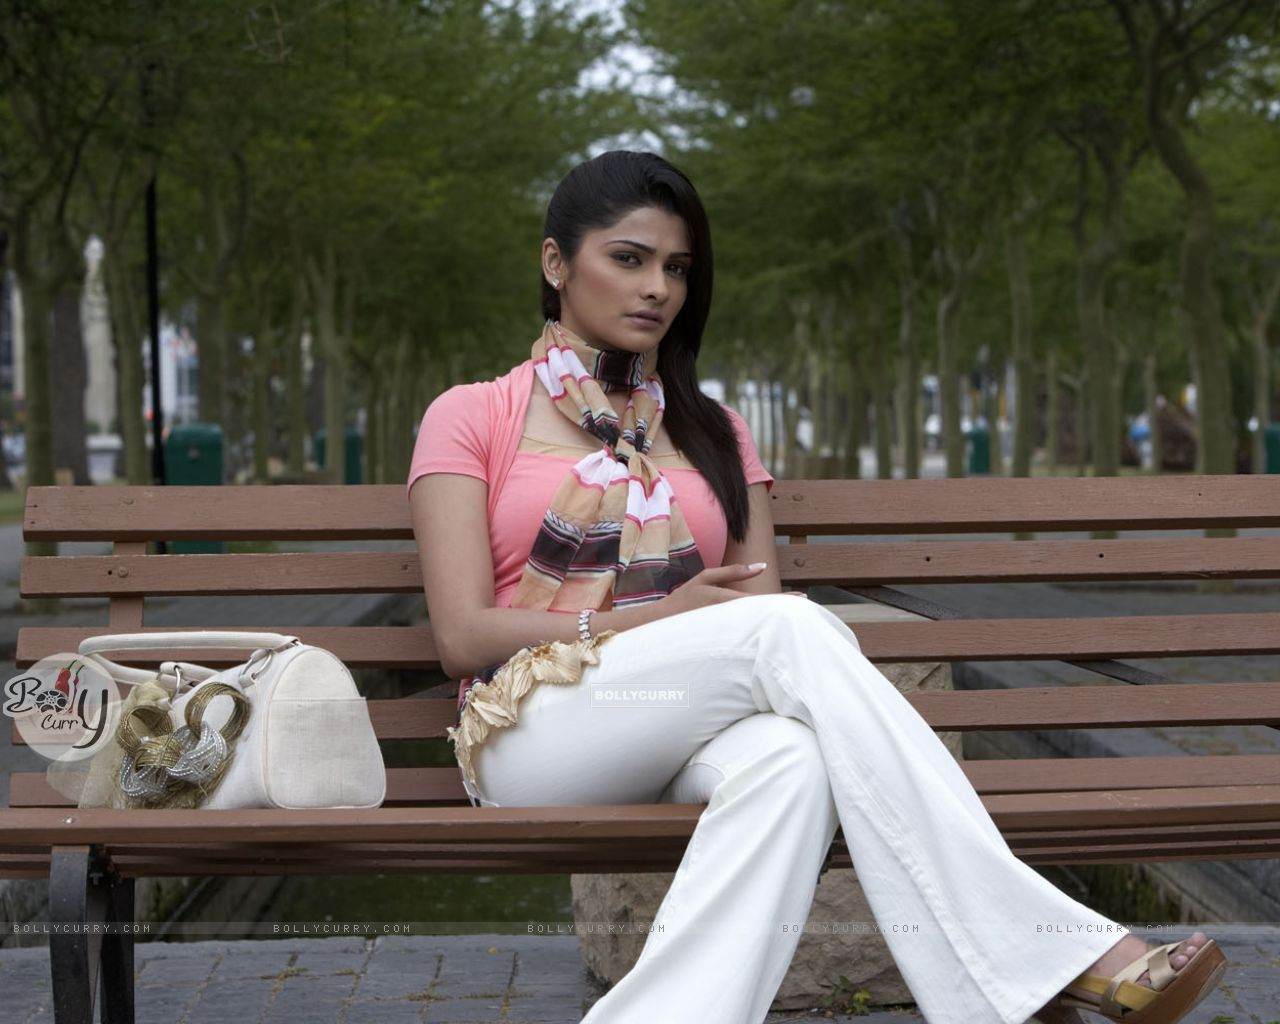 Prachi Desai Hot: Wallpaper - A still image of Prachi Desai (31408) size:1280x1024